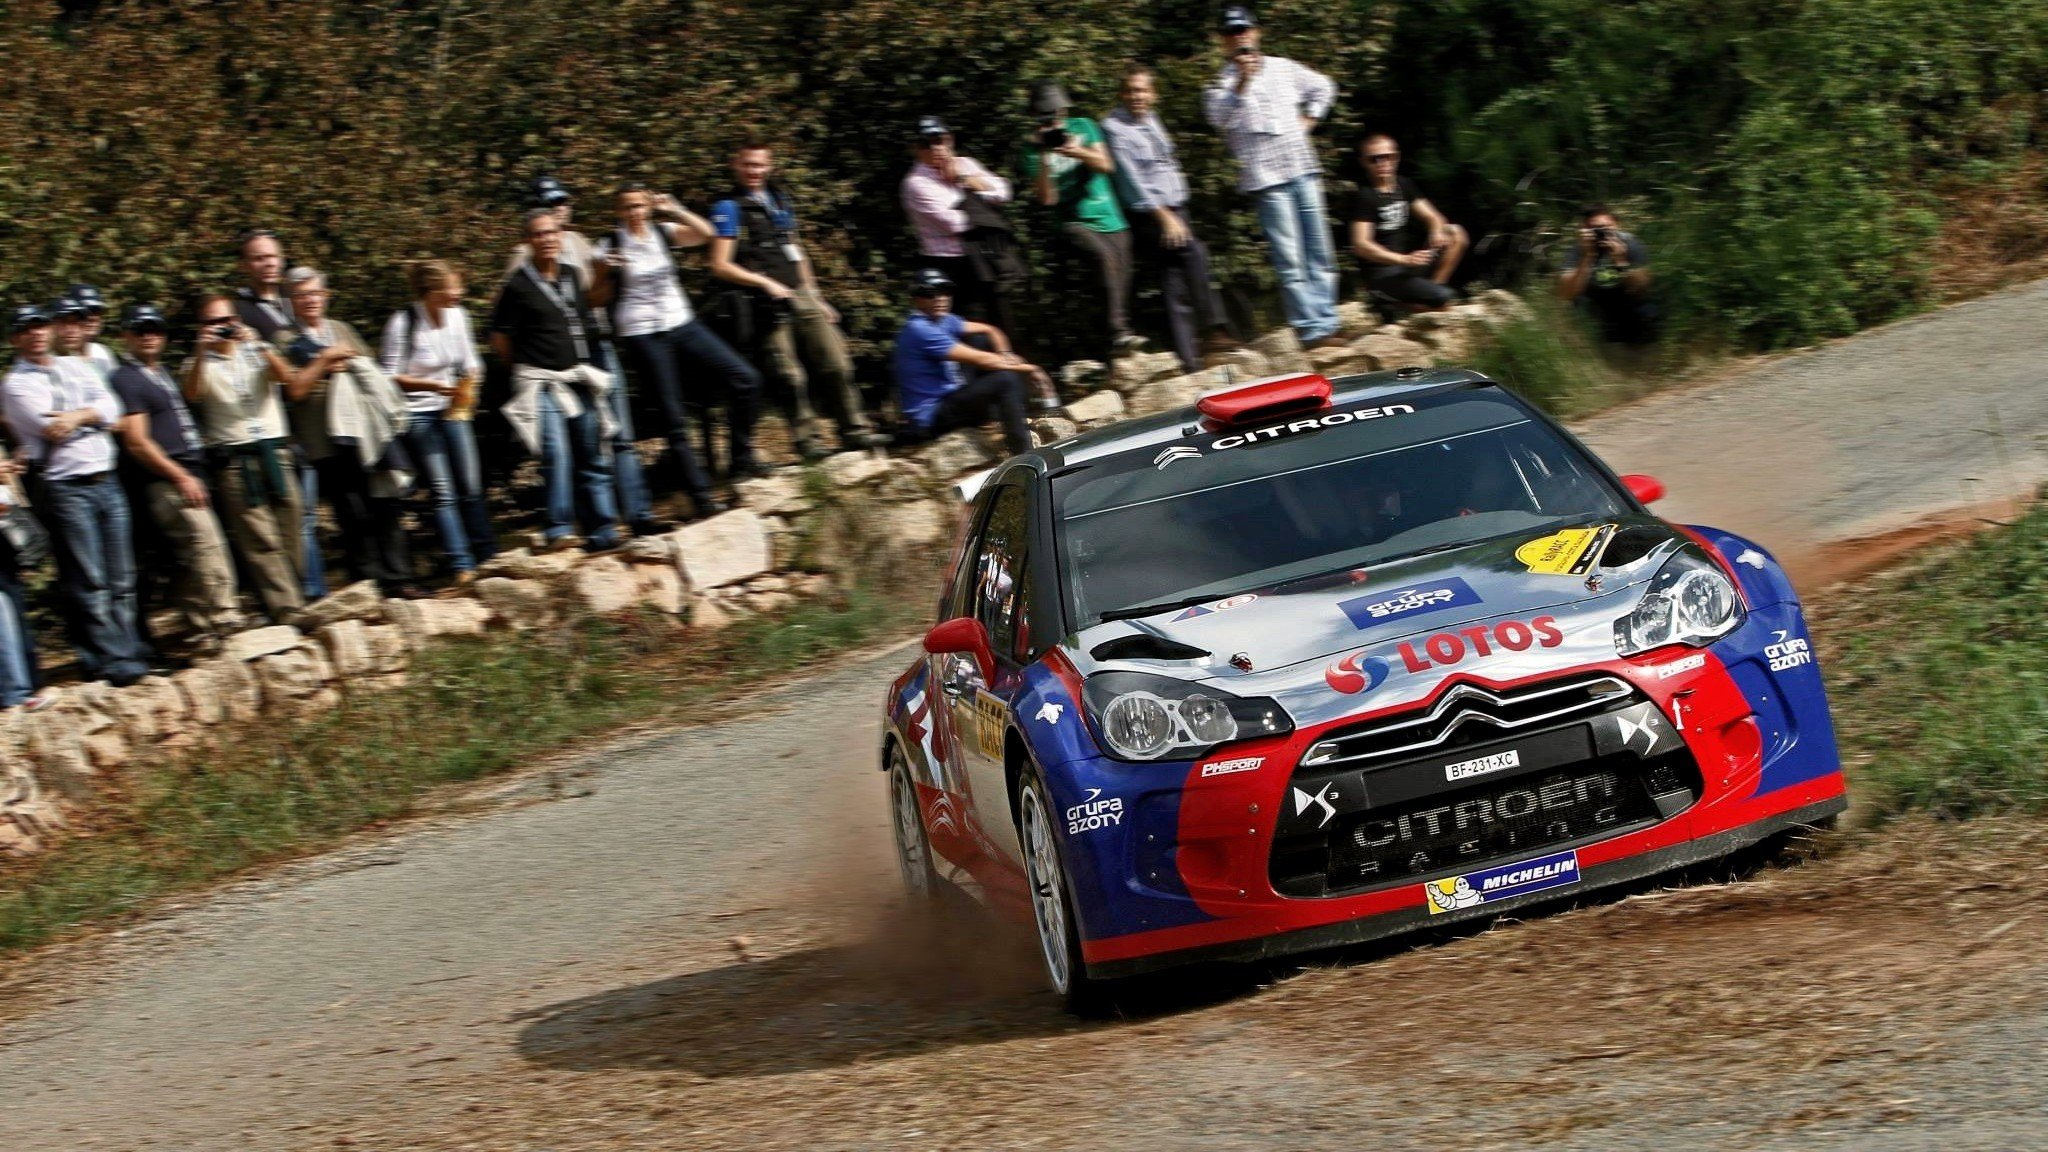 wrc race cars rallye rally cars hd wallpapers desktop and mobile images photos. Black Bedroom Furniture Sets. Home Design Ideas